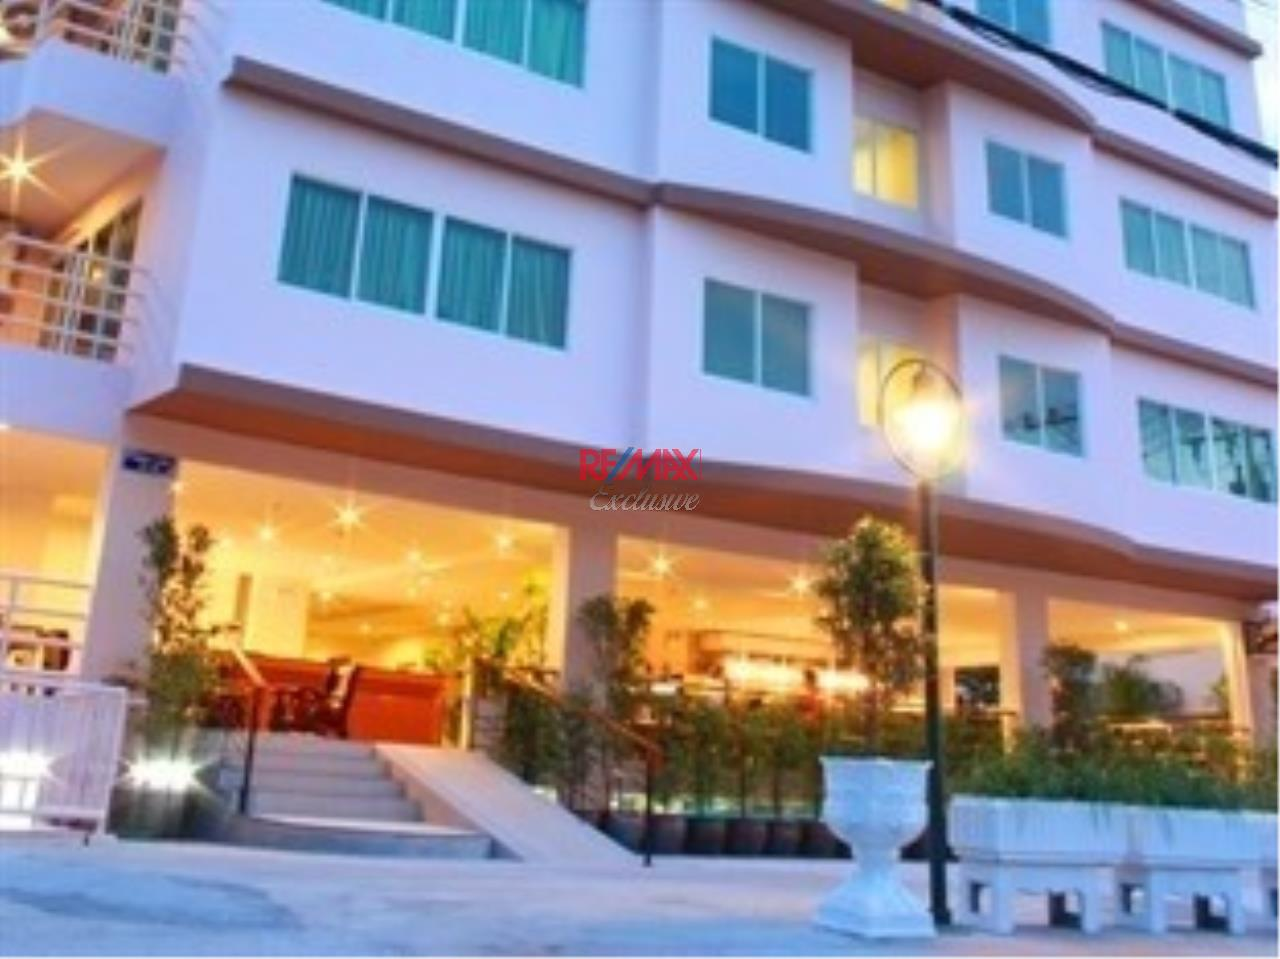 RE/MAX Exclusive Agency's Hotel with 80 Rooms for sale in Partumnak Pattaya Chonburi Great Price 130,000,000 11